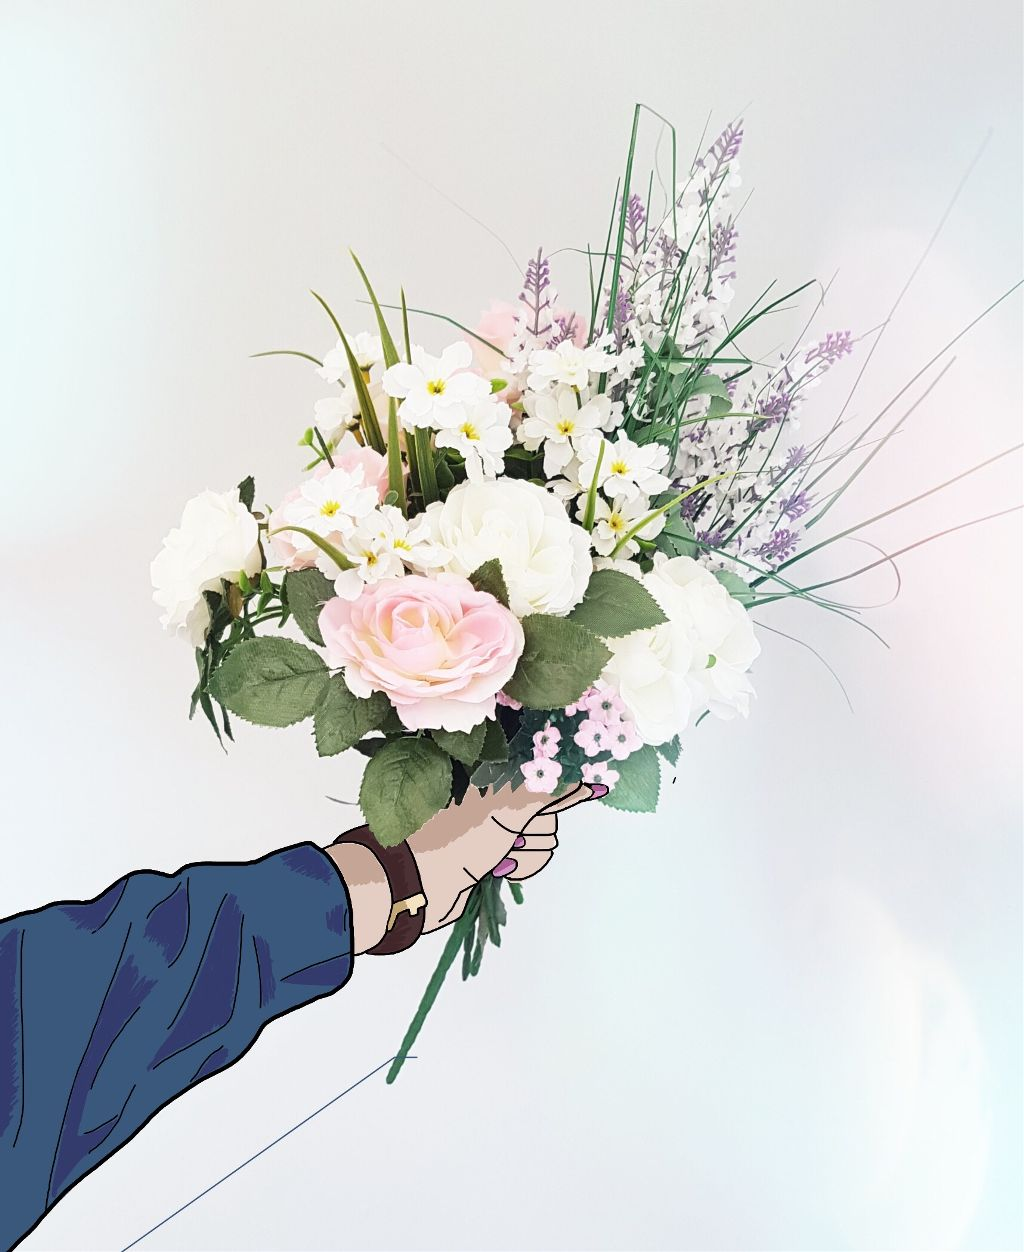 freetoedit flowers bouquet tumblr hand drawing...